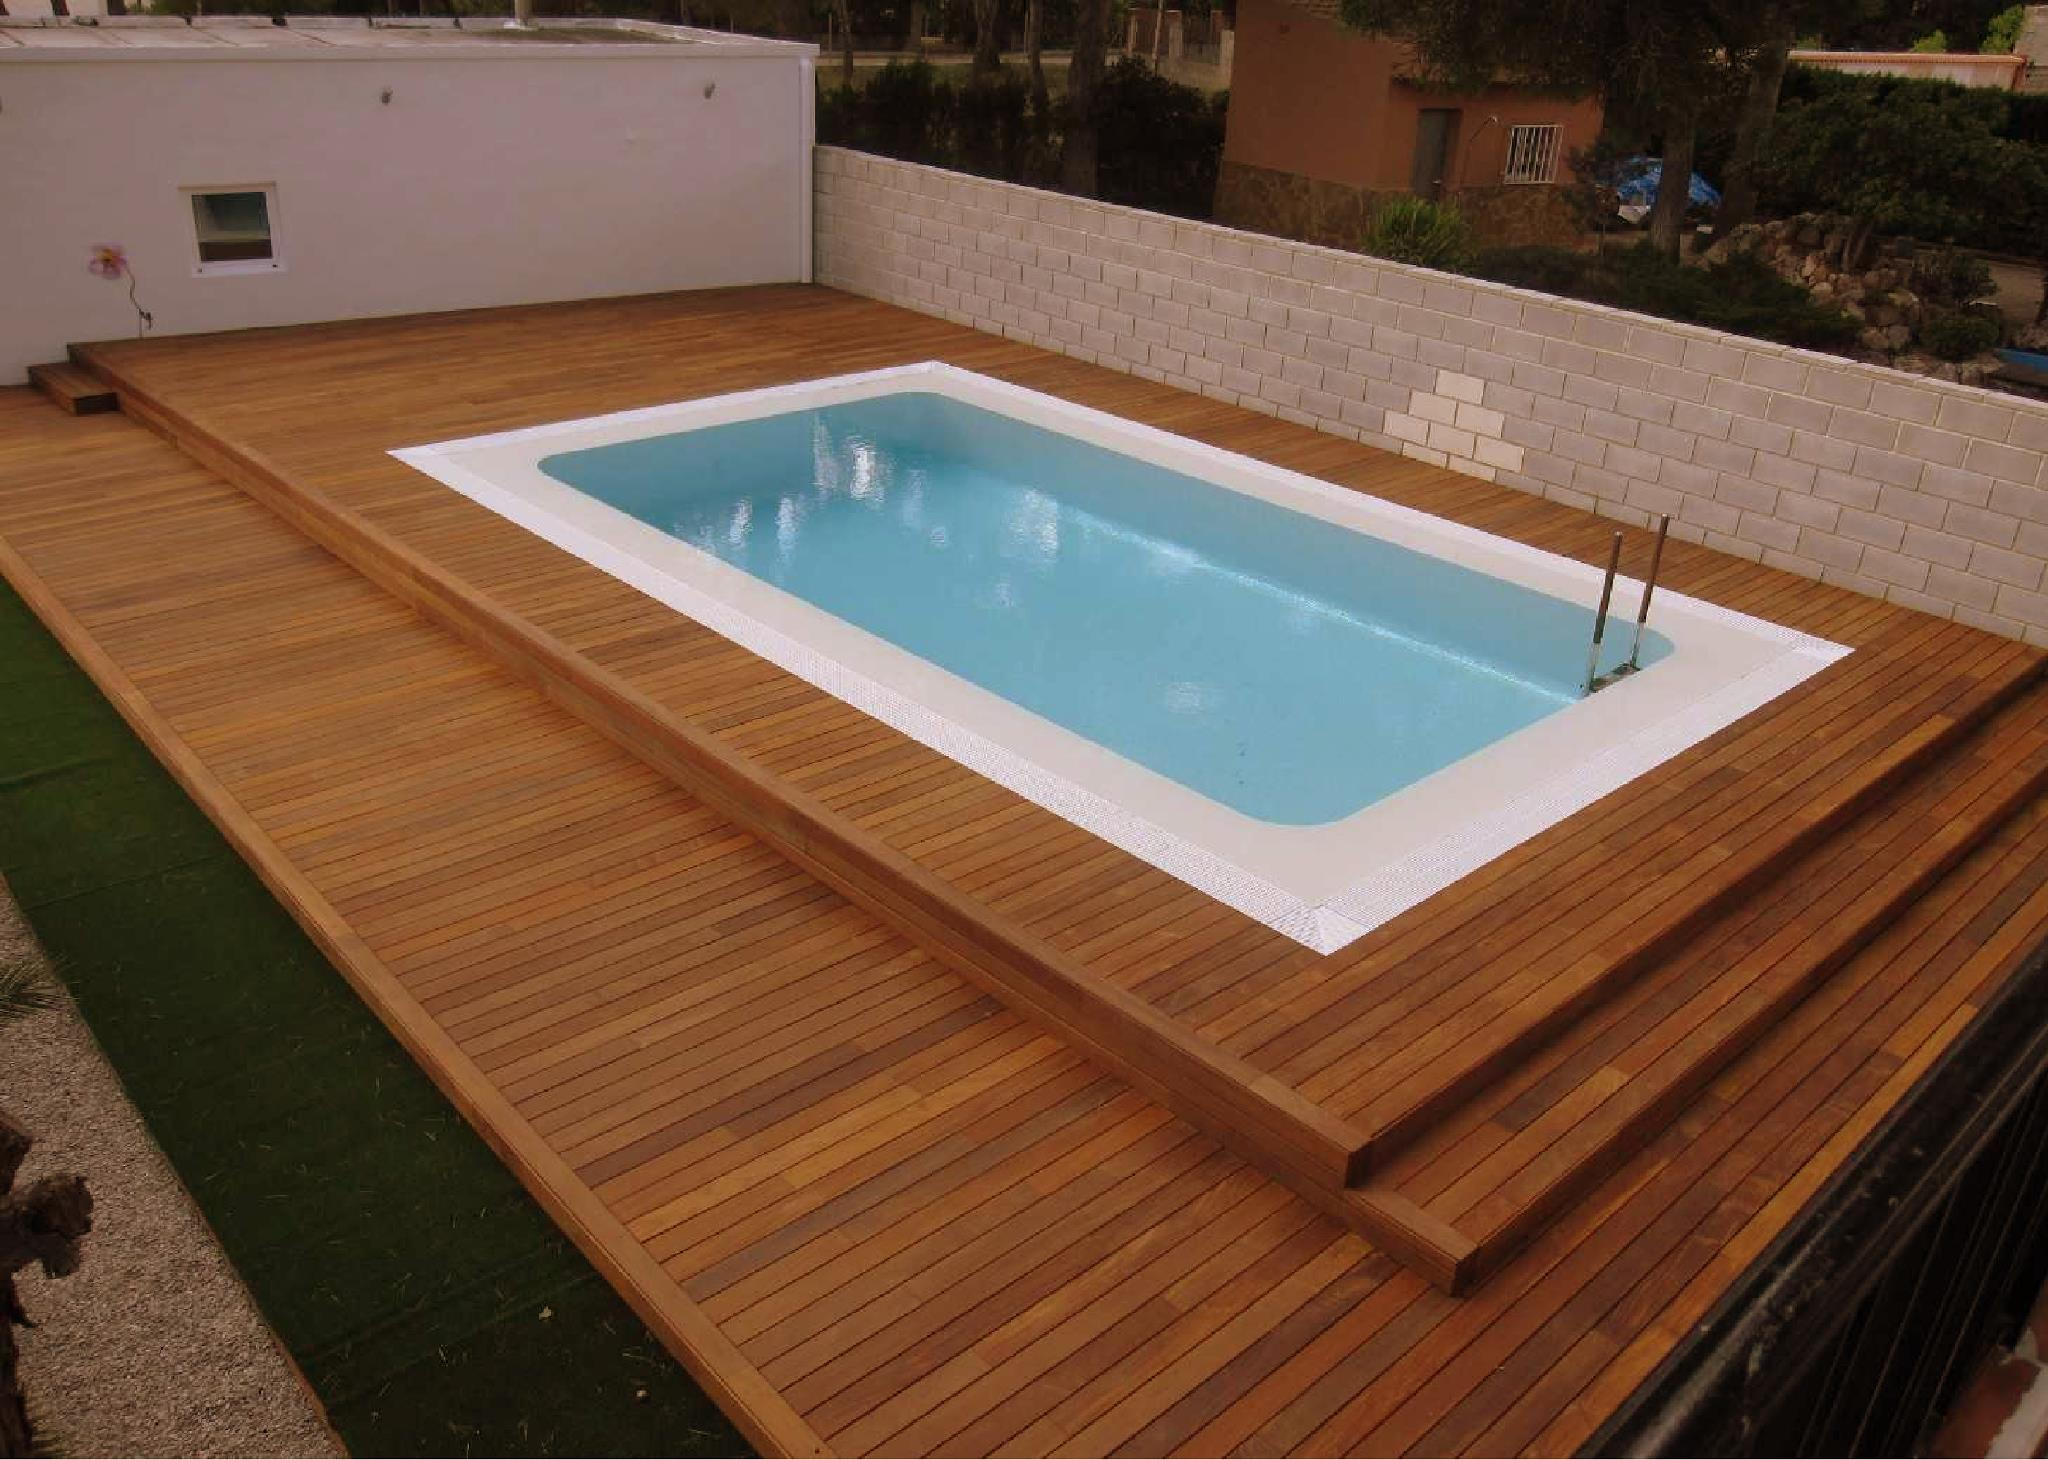 Marvelous This Solid Looking Design, Takes The Abruptness Of Shape That Some Above  Ground Swimming Pools Can Have In Their Surroundings By Utilising Wide  Steps Up To ...